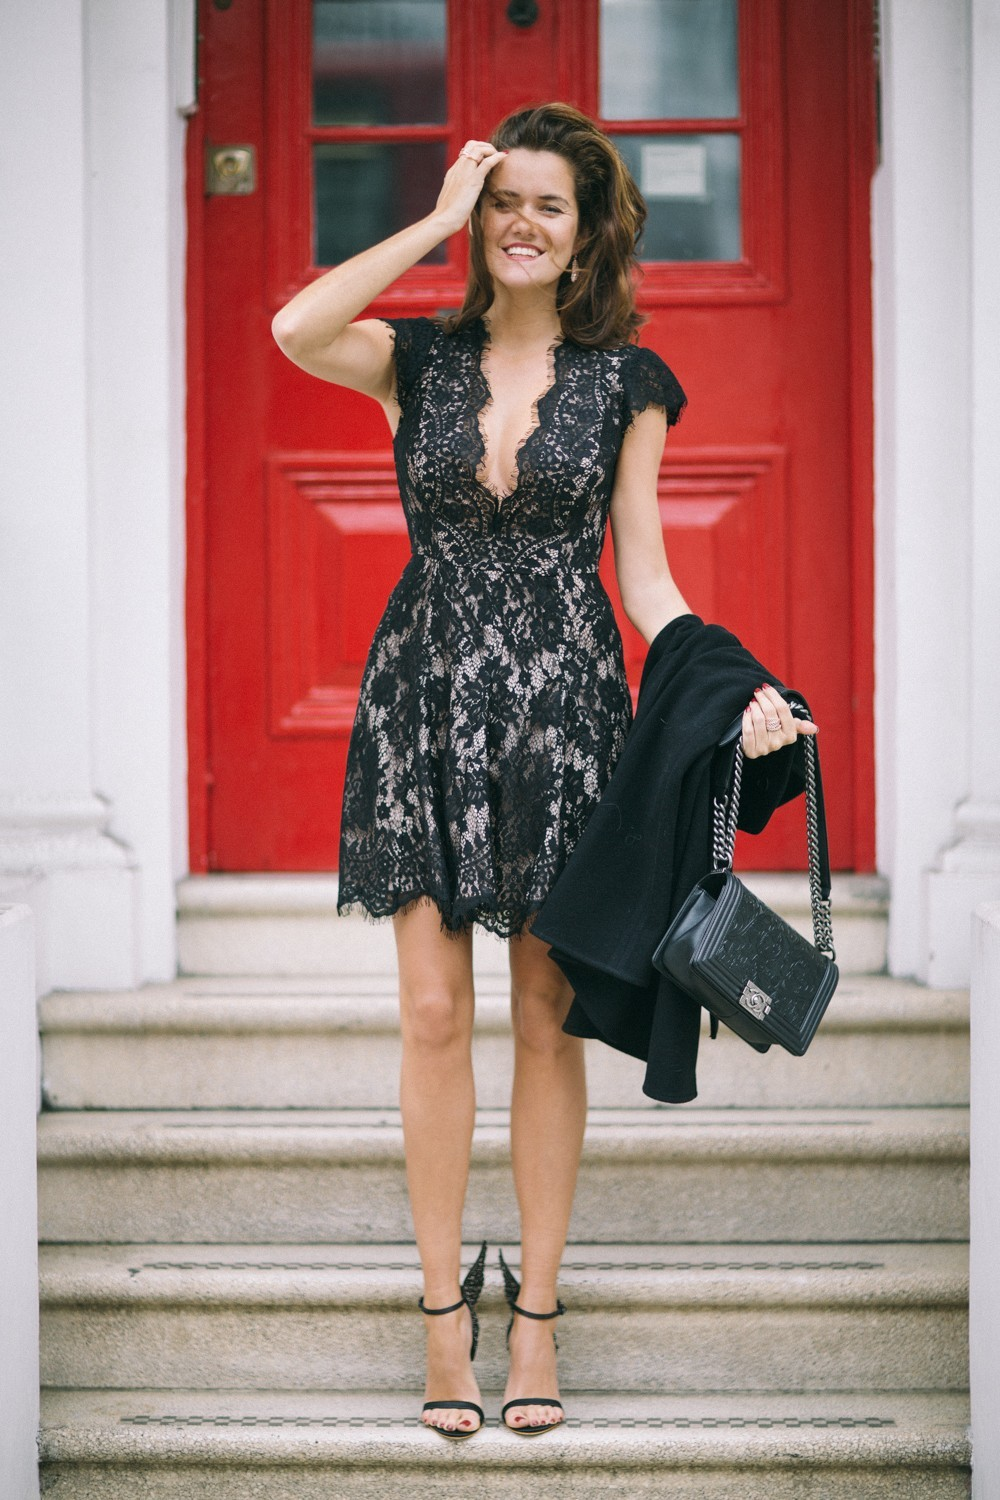 Lacey black dress & barely there sandals